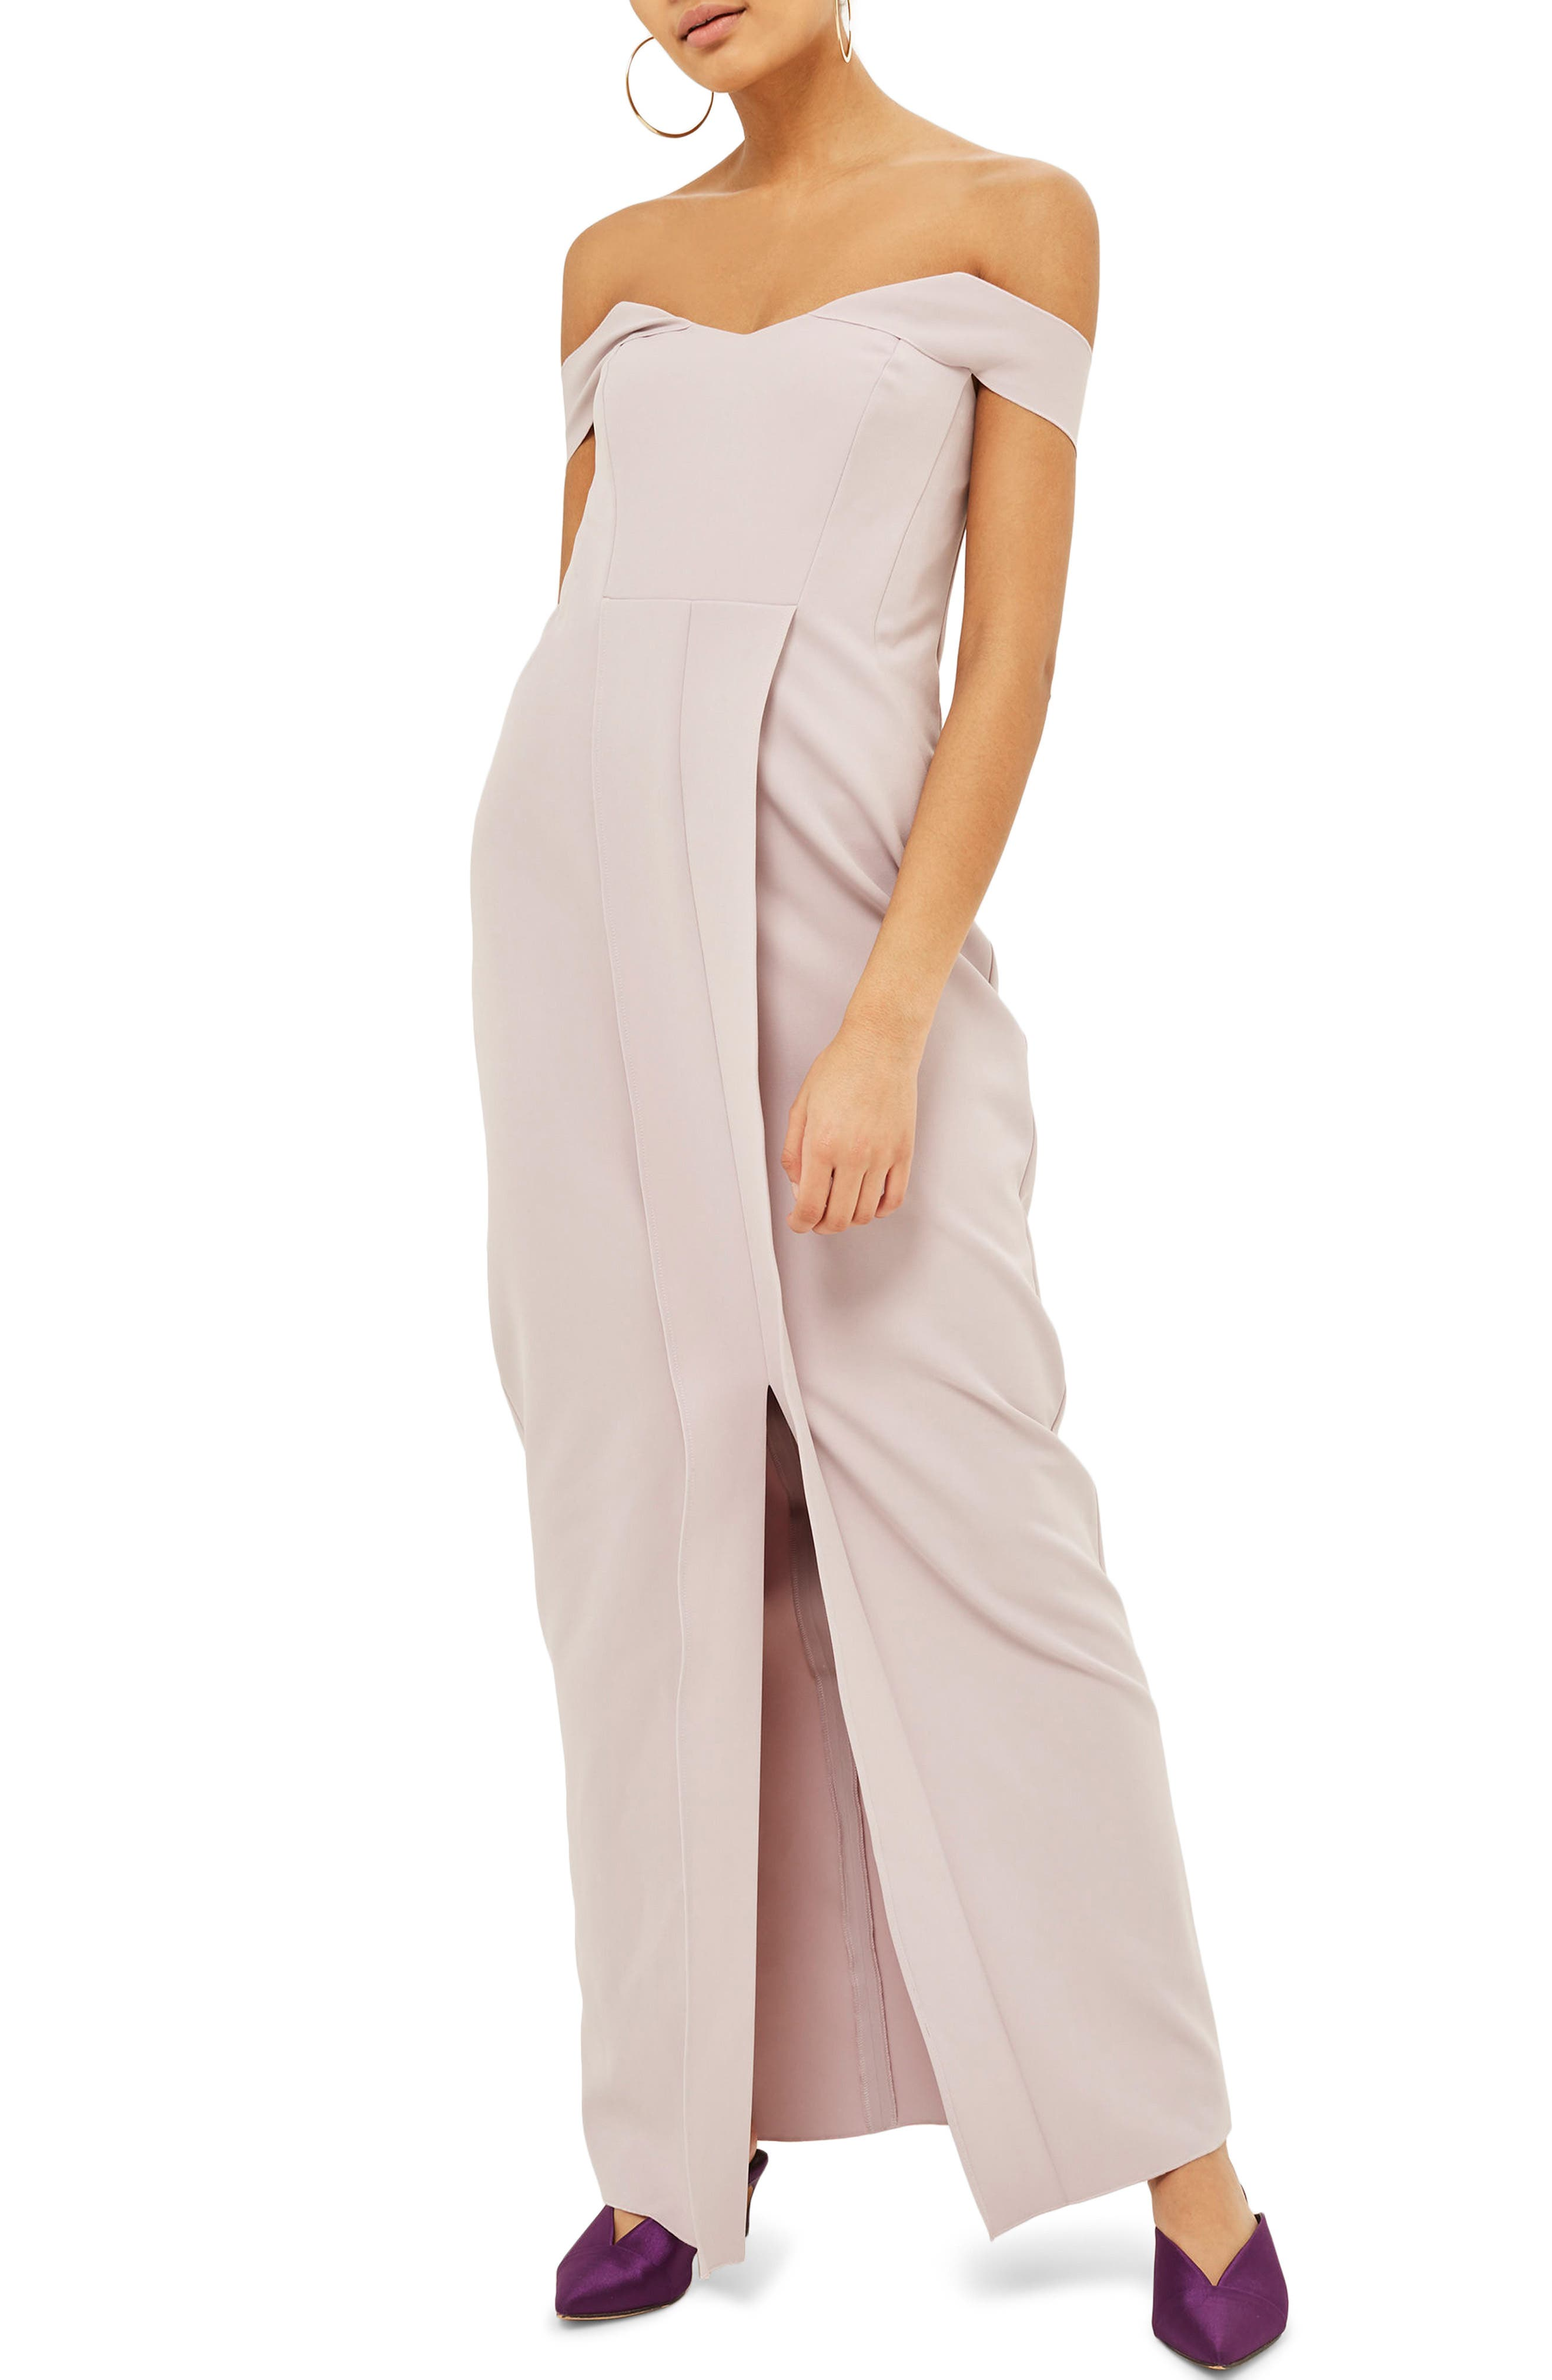 Off the Shoulder Crepe Dress,                             Main thumbnail 1, color,                             Lilac